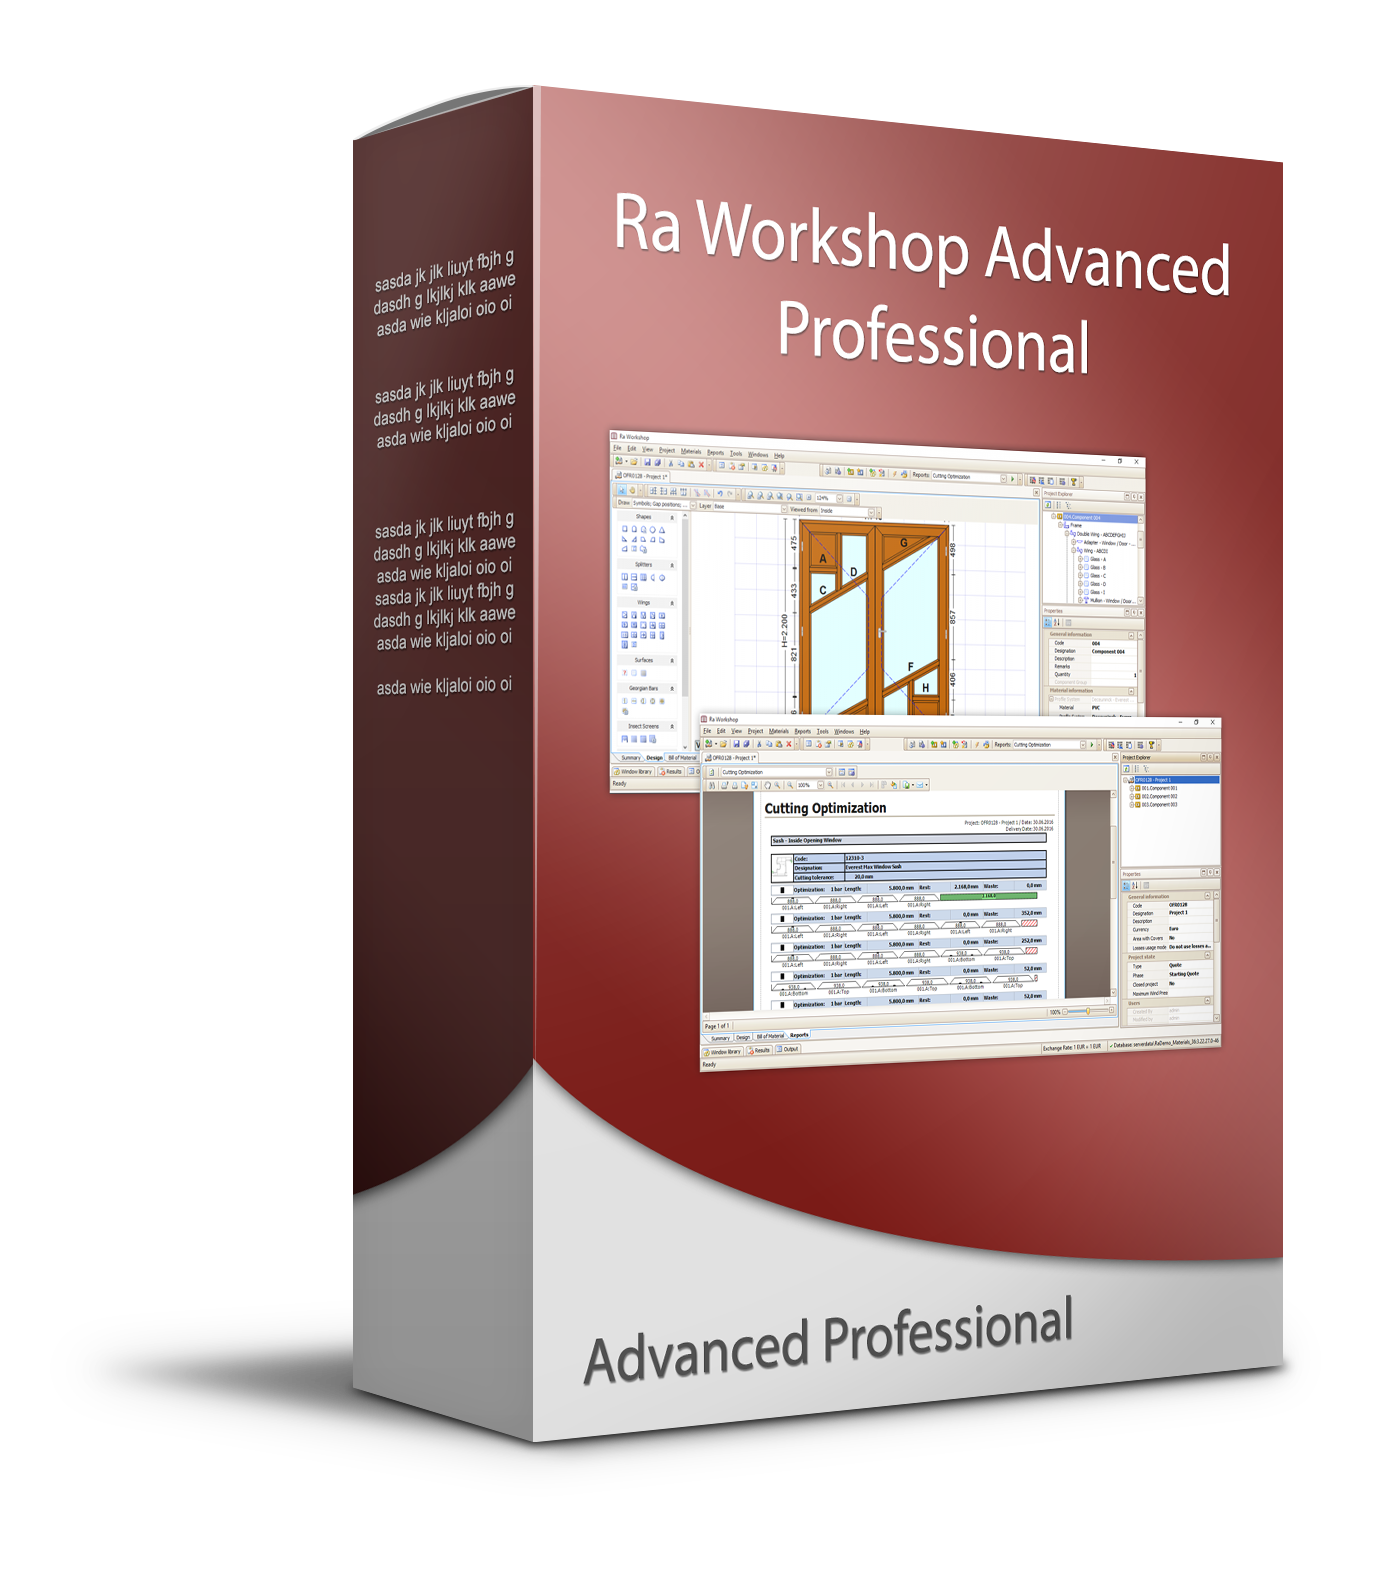 Ra Workshop Advanced